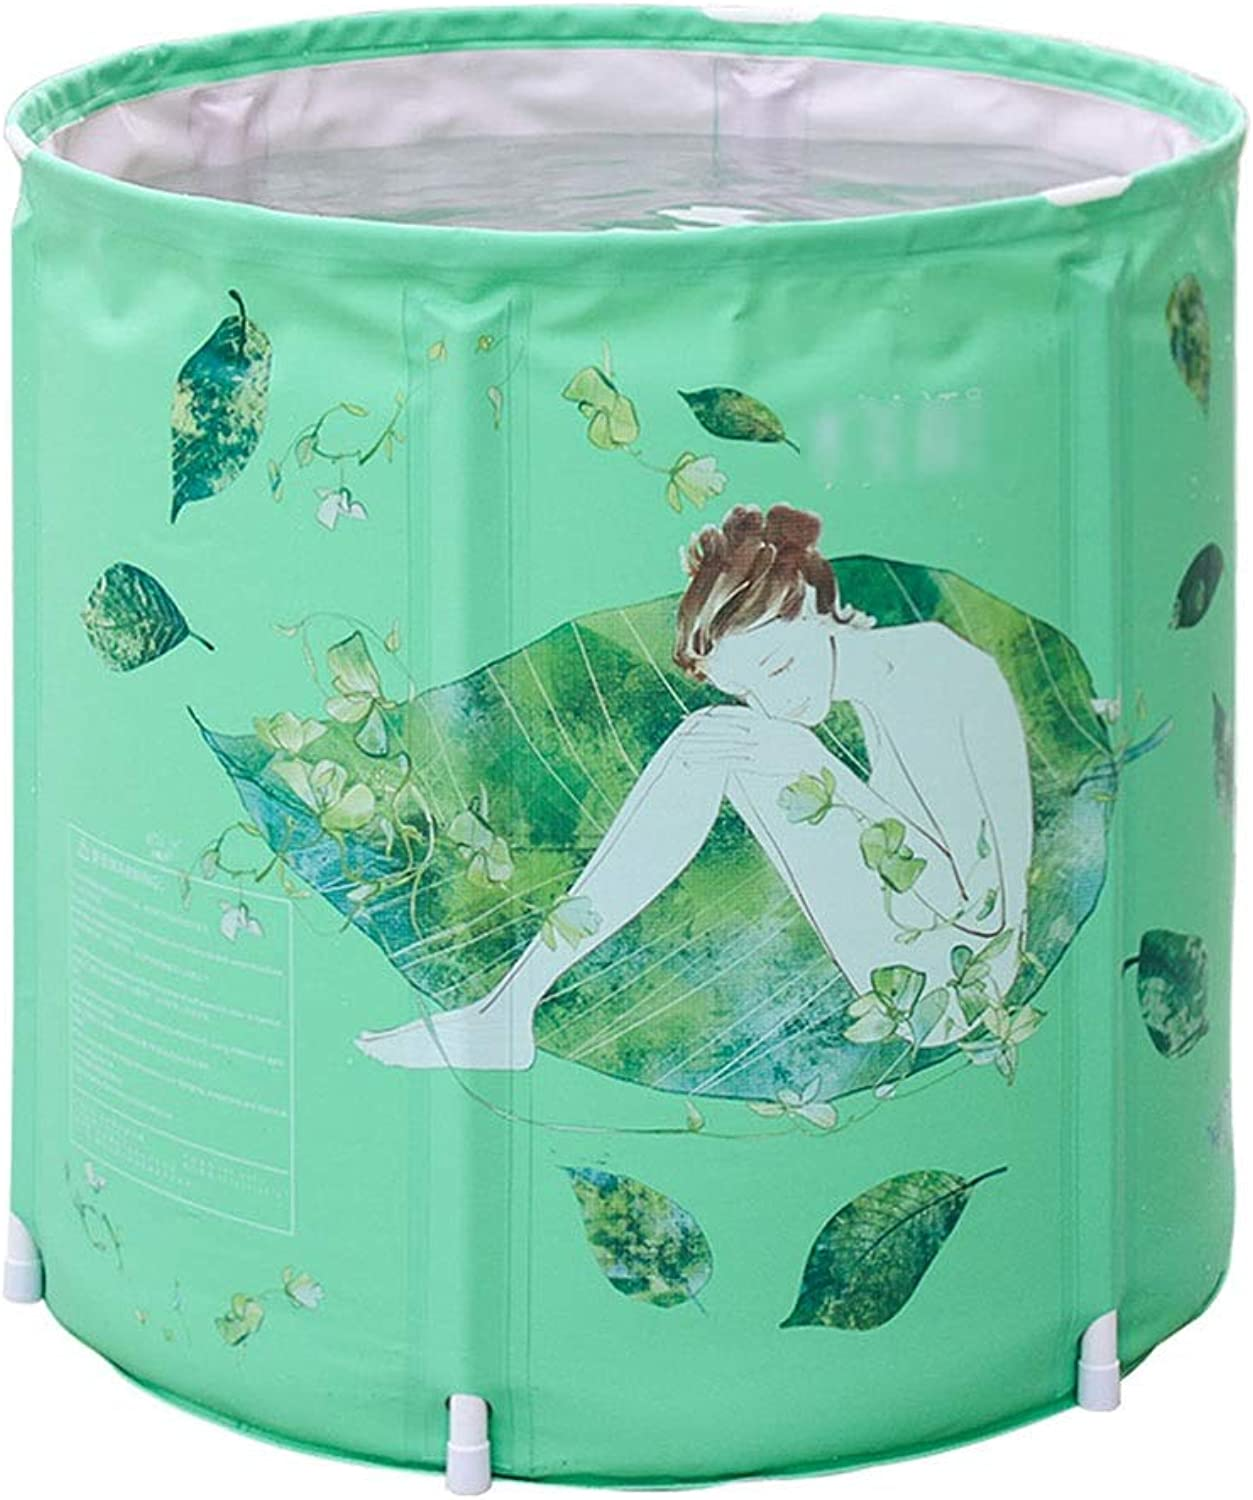 Soaking Baths Bath Barrel Adult Household Folding Bath Barrel Full Body Bath Barrel Thickened Bath Barrel Three-layer Quilted Long Holding Time (color   Green, Size   58  70cm)